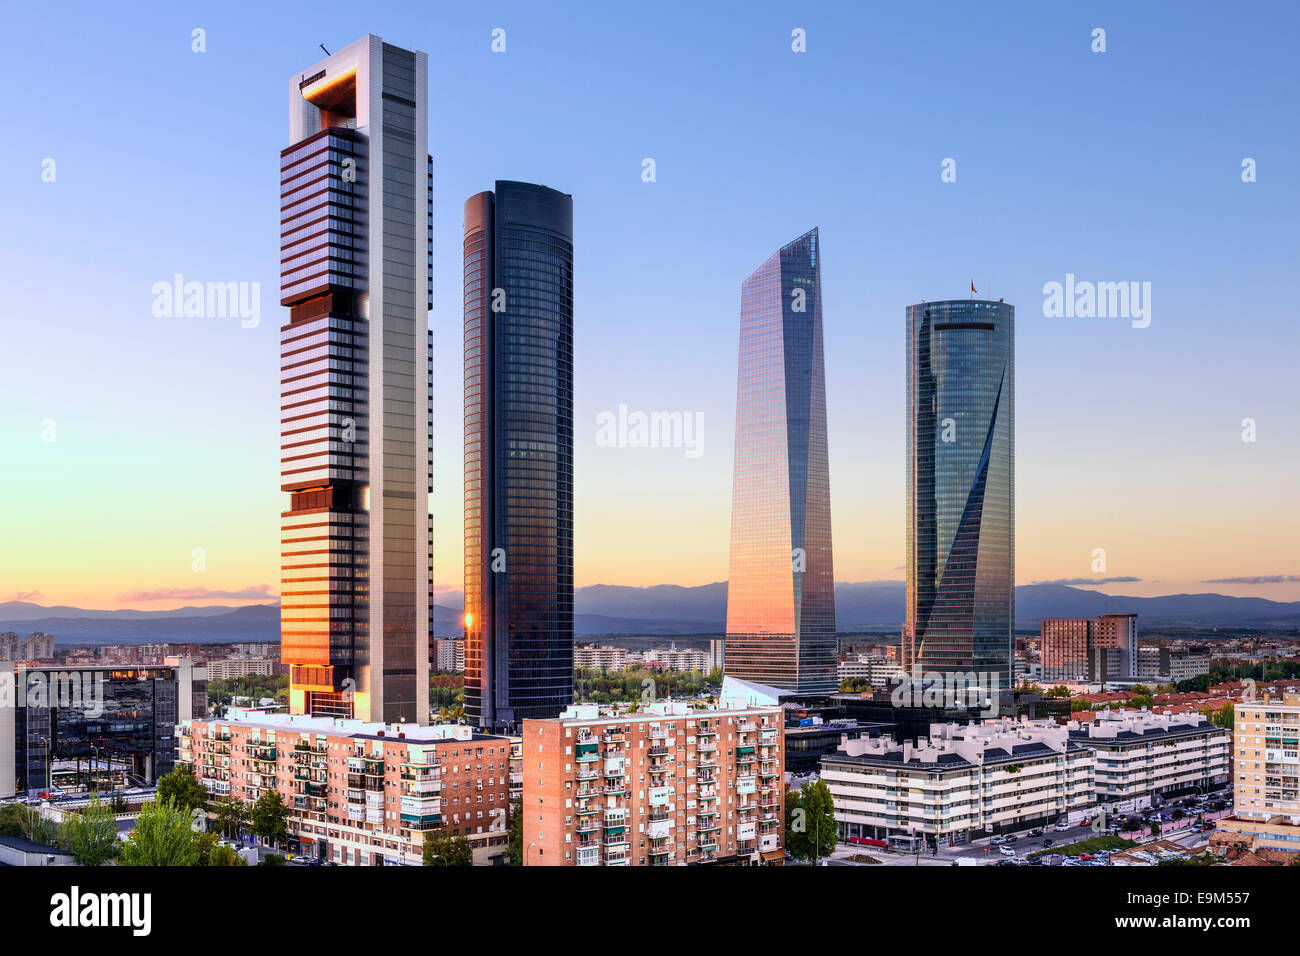 Madrid, Spain financial district skyline at dusk. - Stock Image